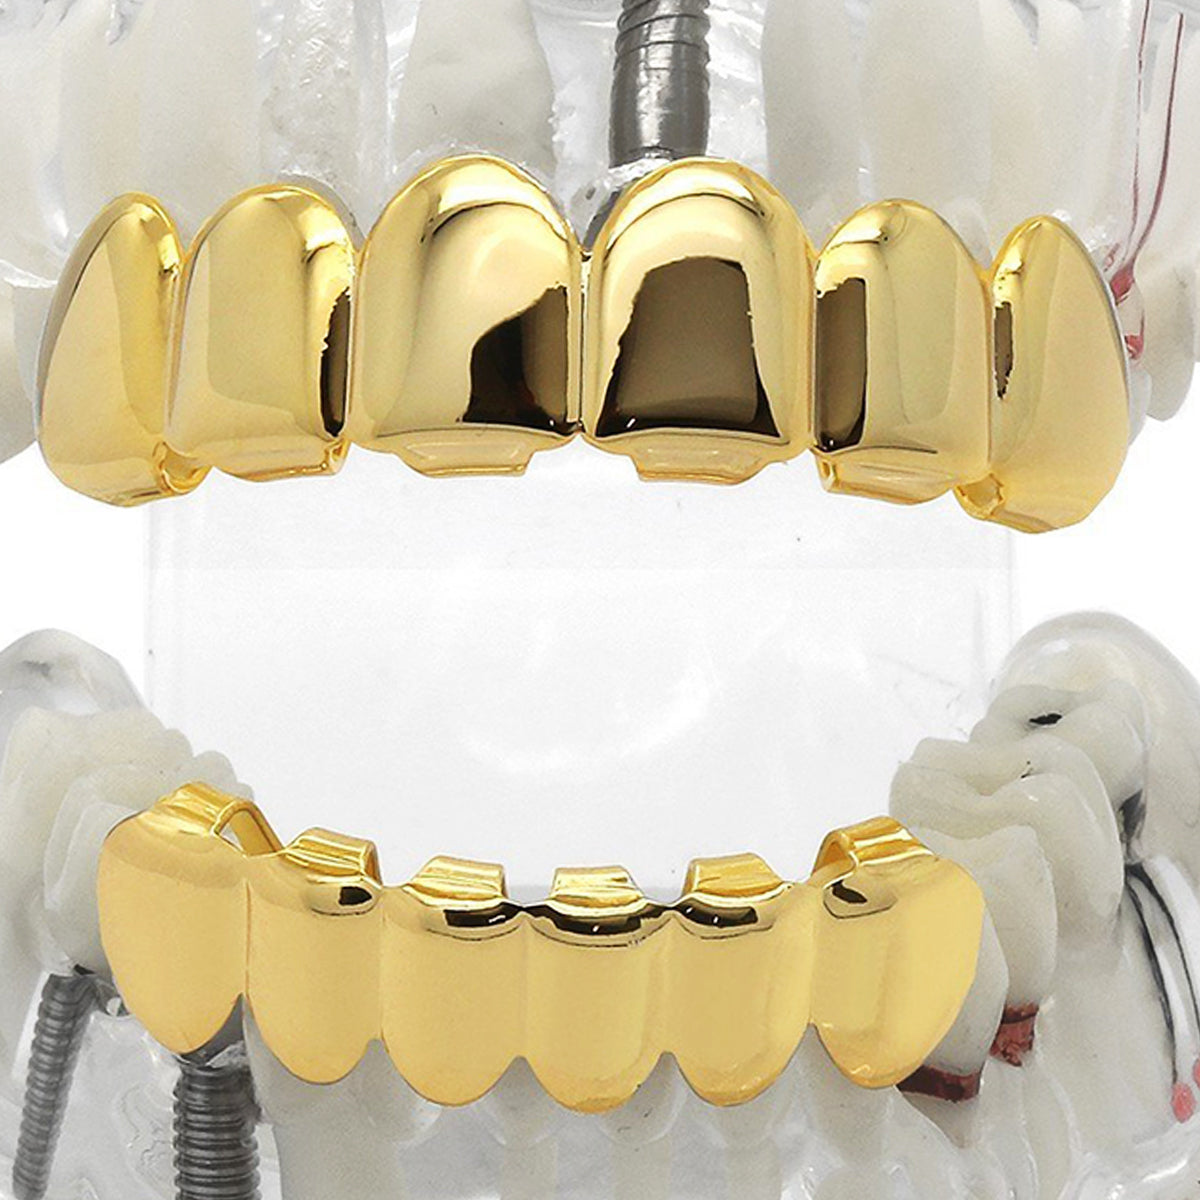 GRILLZ SET GOLD PLAIN